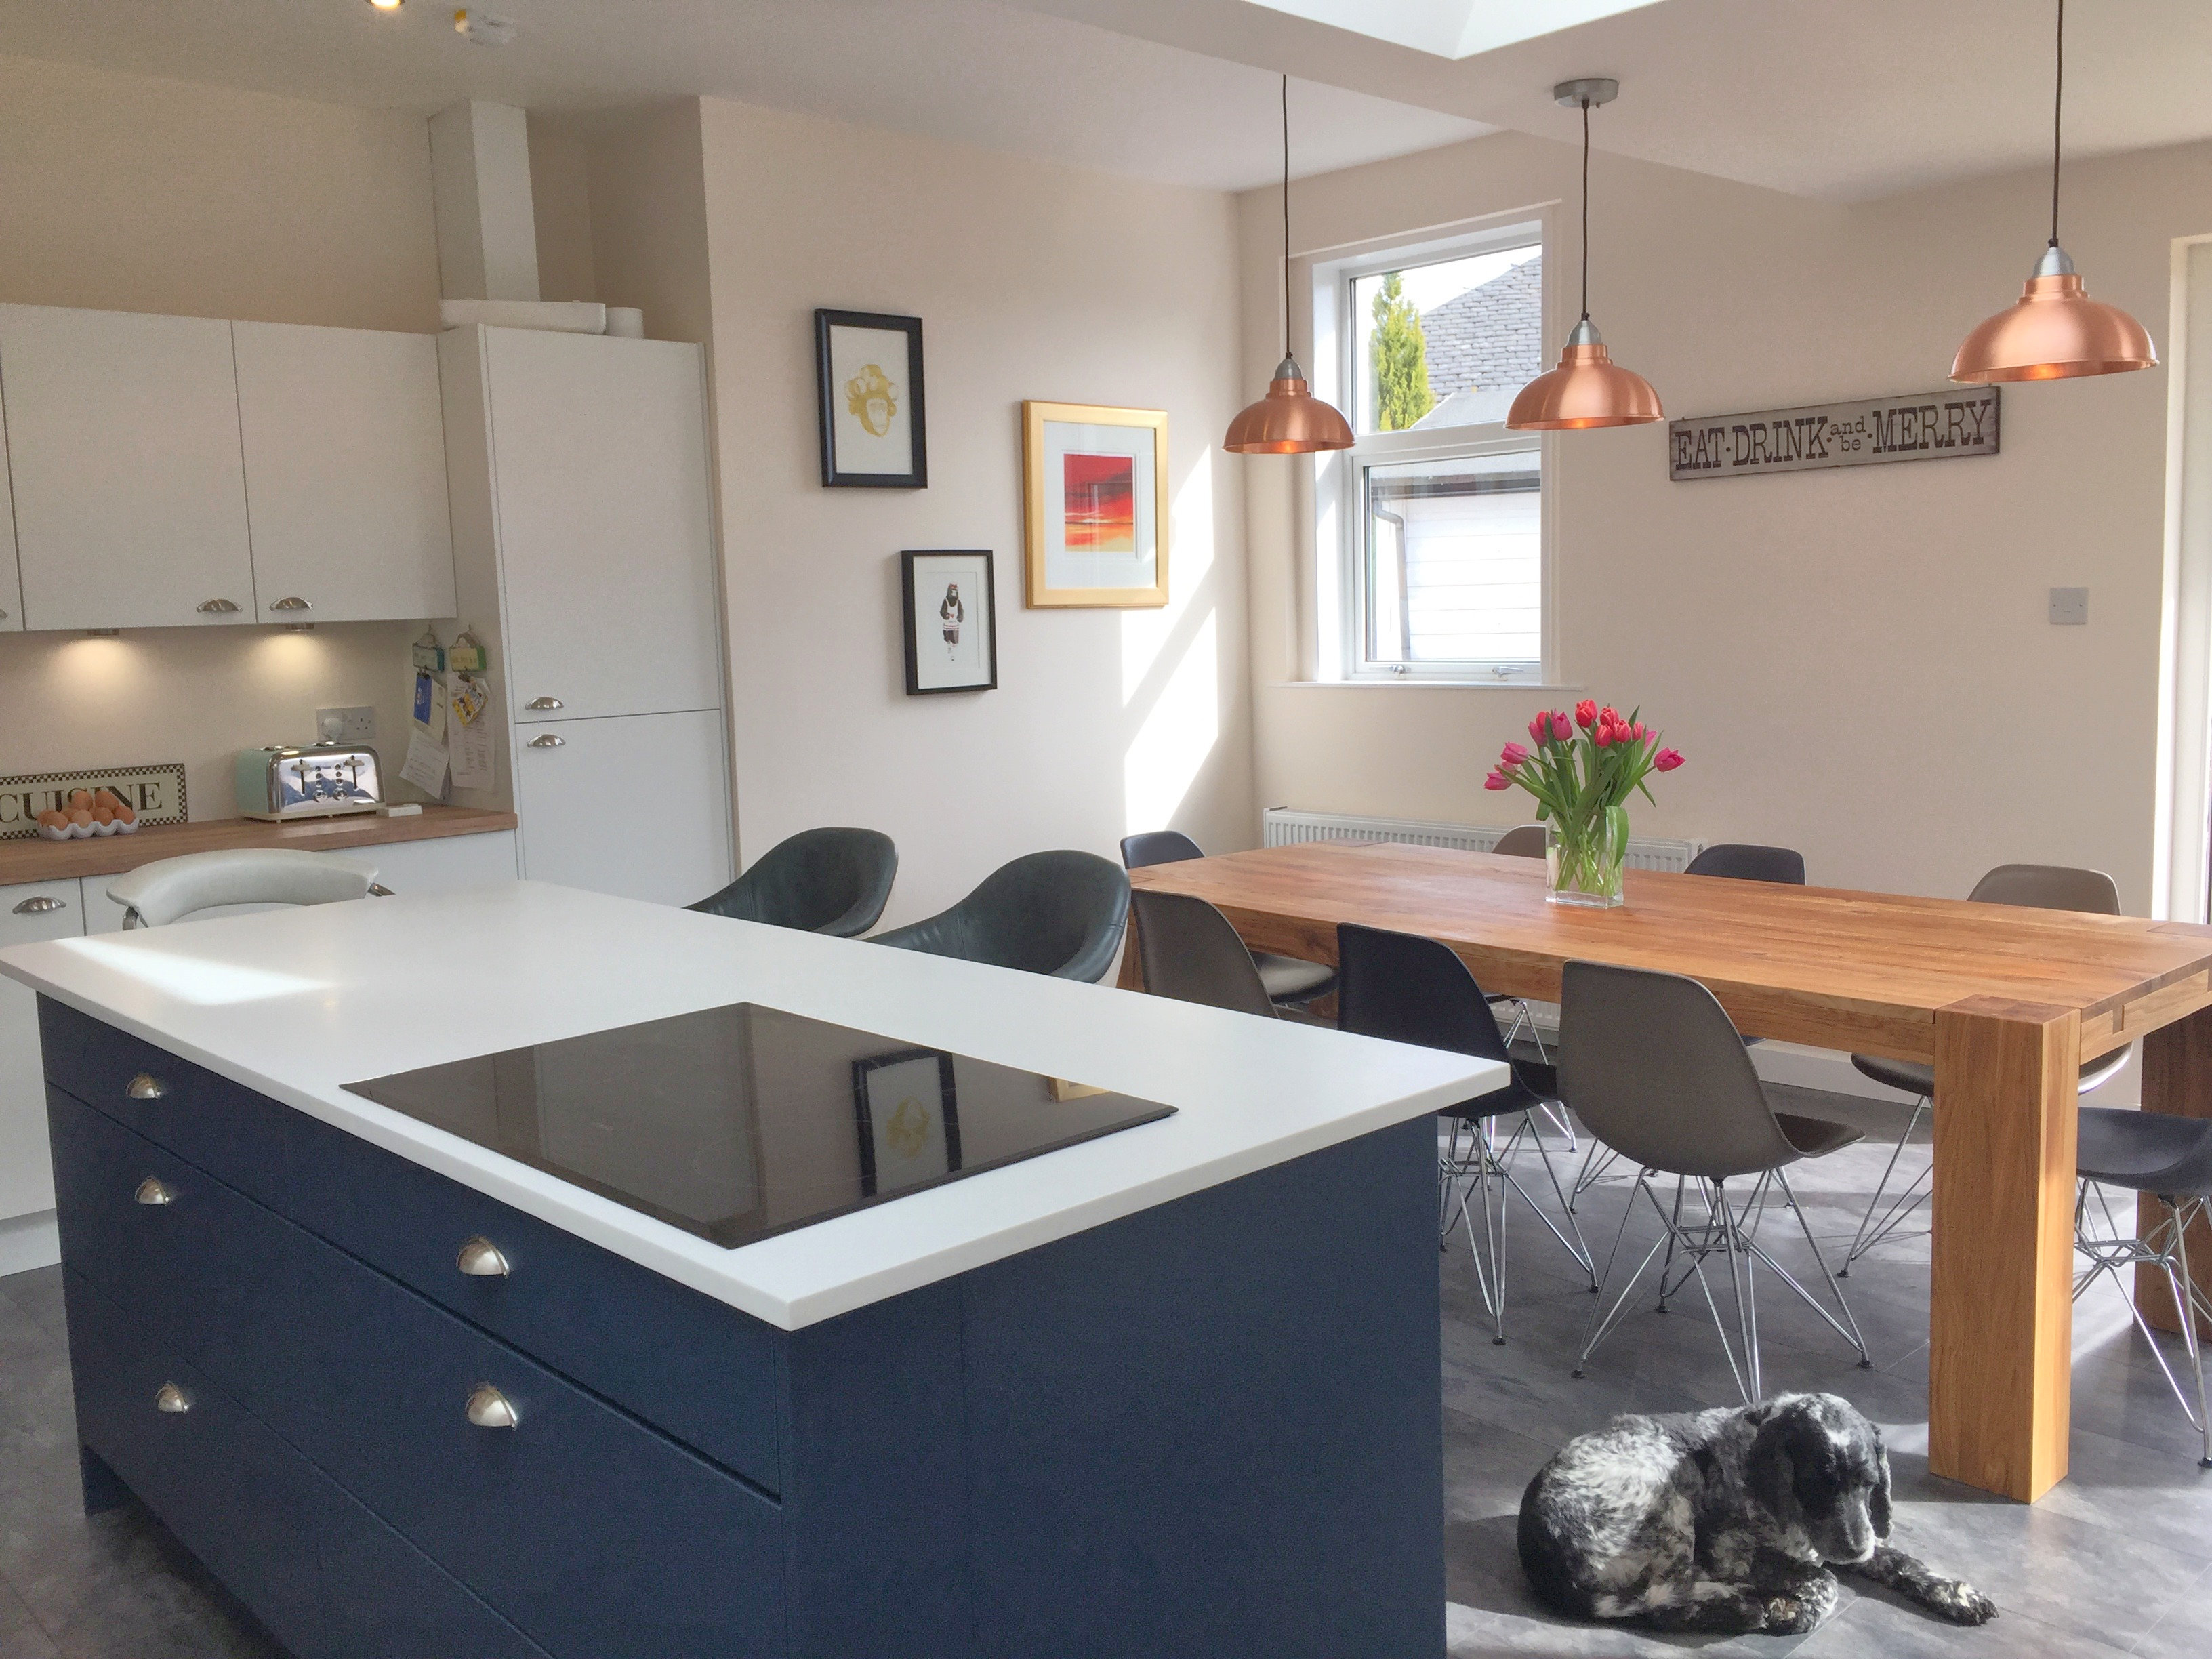 Superior Http://www.aspiretradekitchens.co.uk/wp Content/